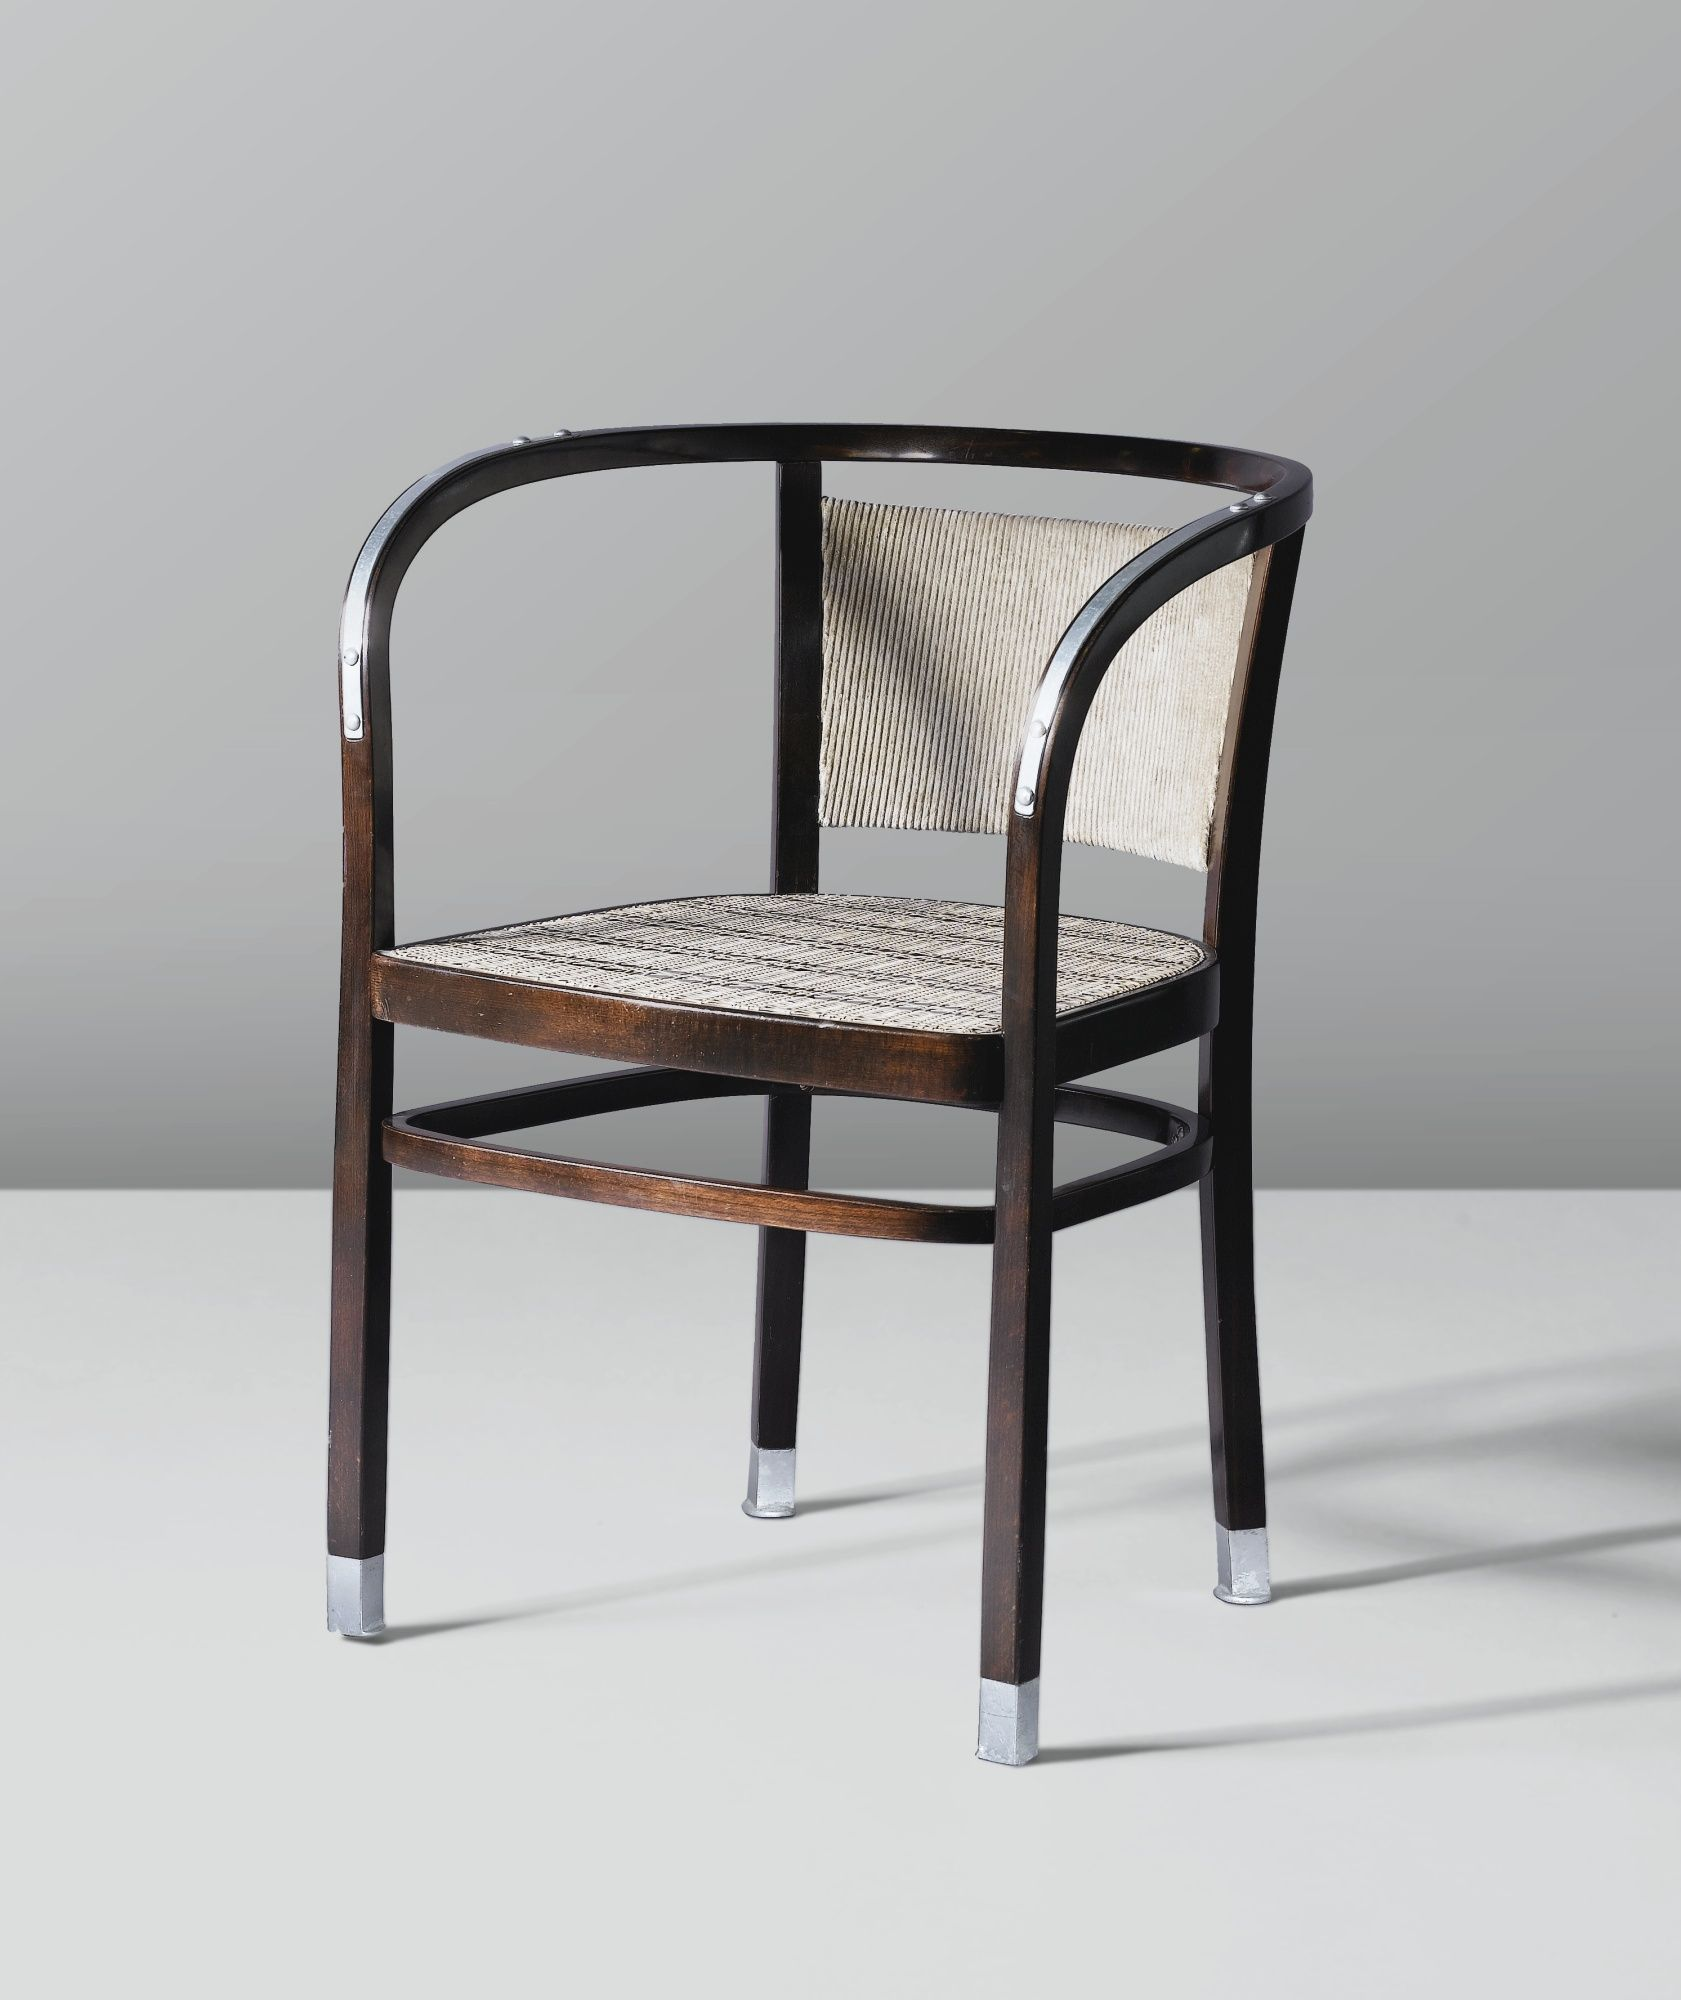 Otto Wagner 1900 Furniture Furniture Dining Chairs Chair Design